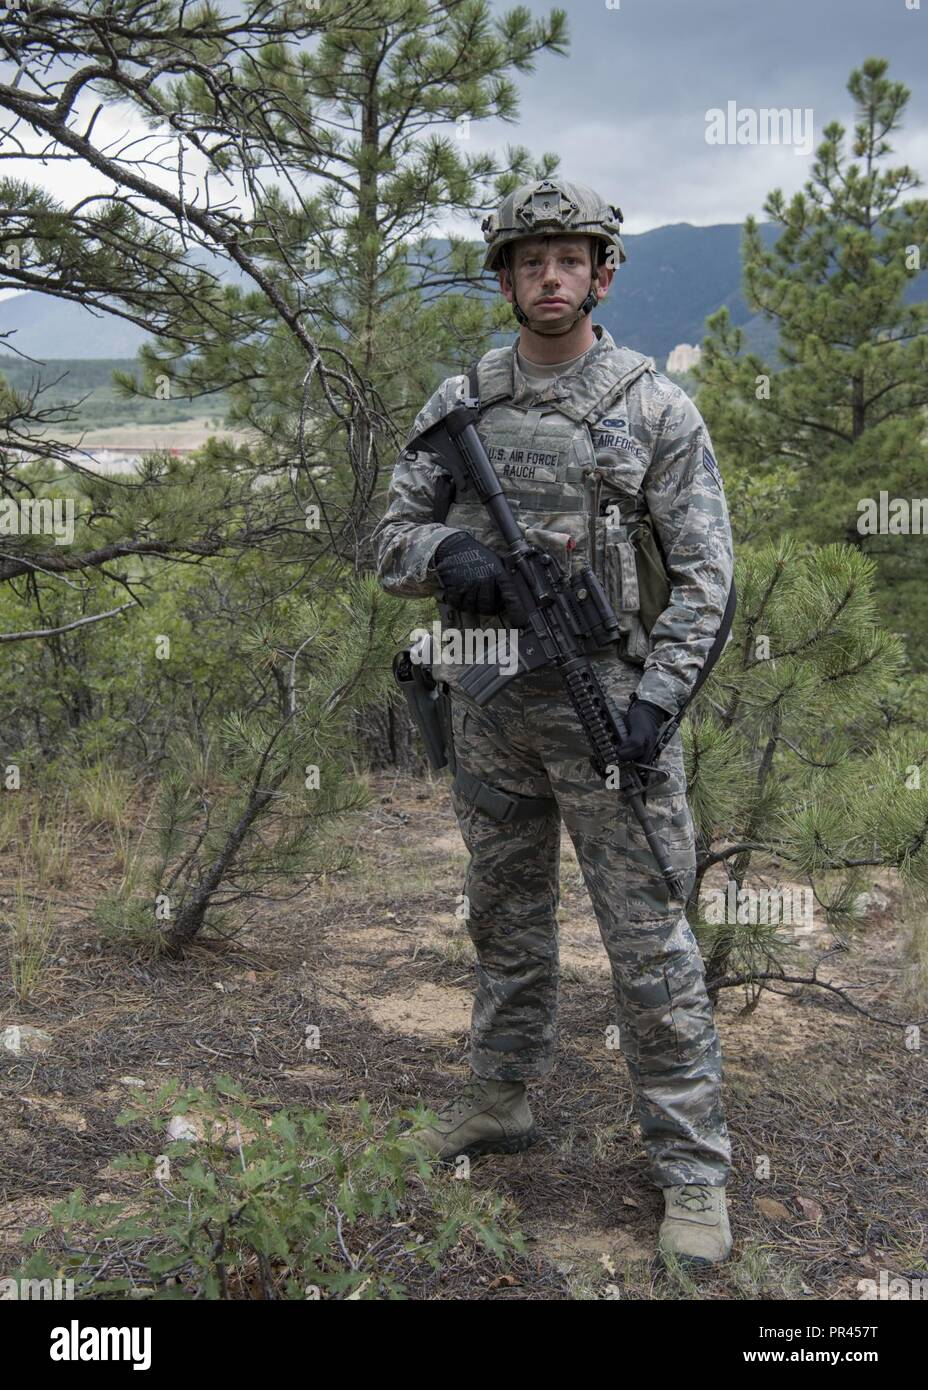 Senior Airman Nicholas Rauch of the 460th Security Forces